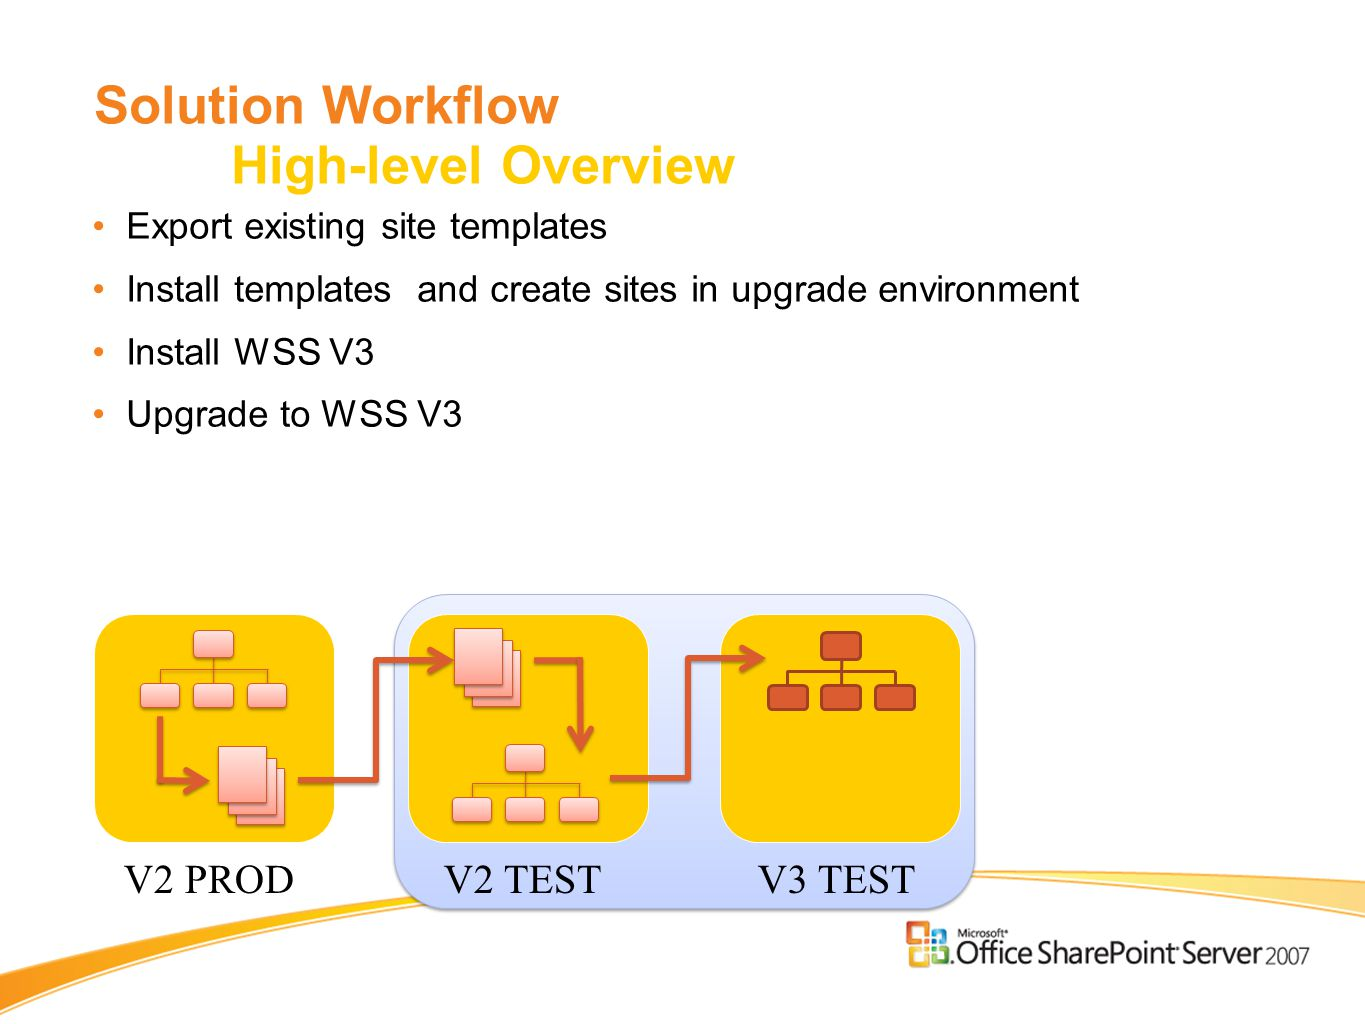 Solution Workflow High-level Overview Export existing site templates Install templates and create sites in upgrade environment Install WSS V3 Upgrade to WSS V3 V2 PRODV2 TESTV3 TEST